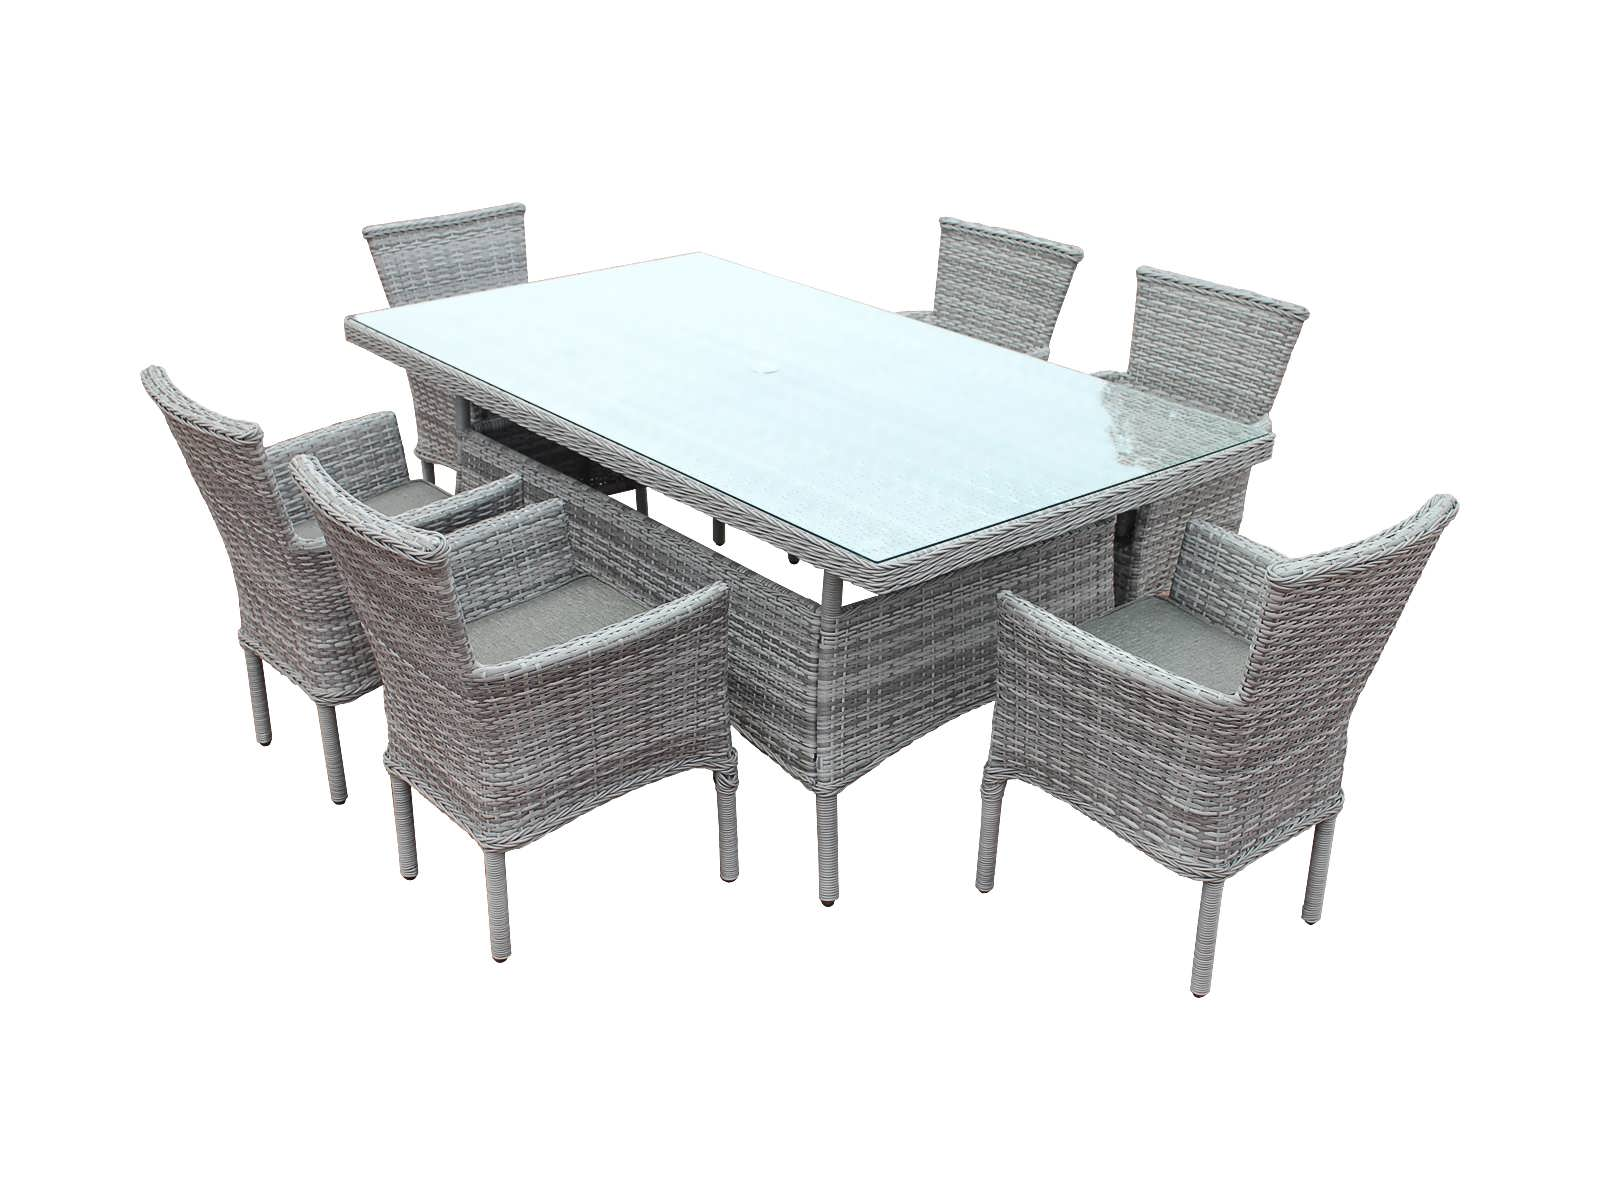 Cambridge 6 Rattan Chairs and Rectangular Table Set in Grey